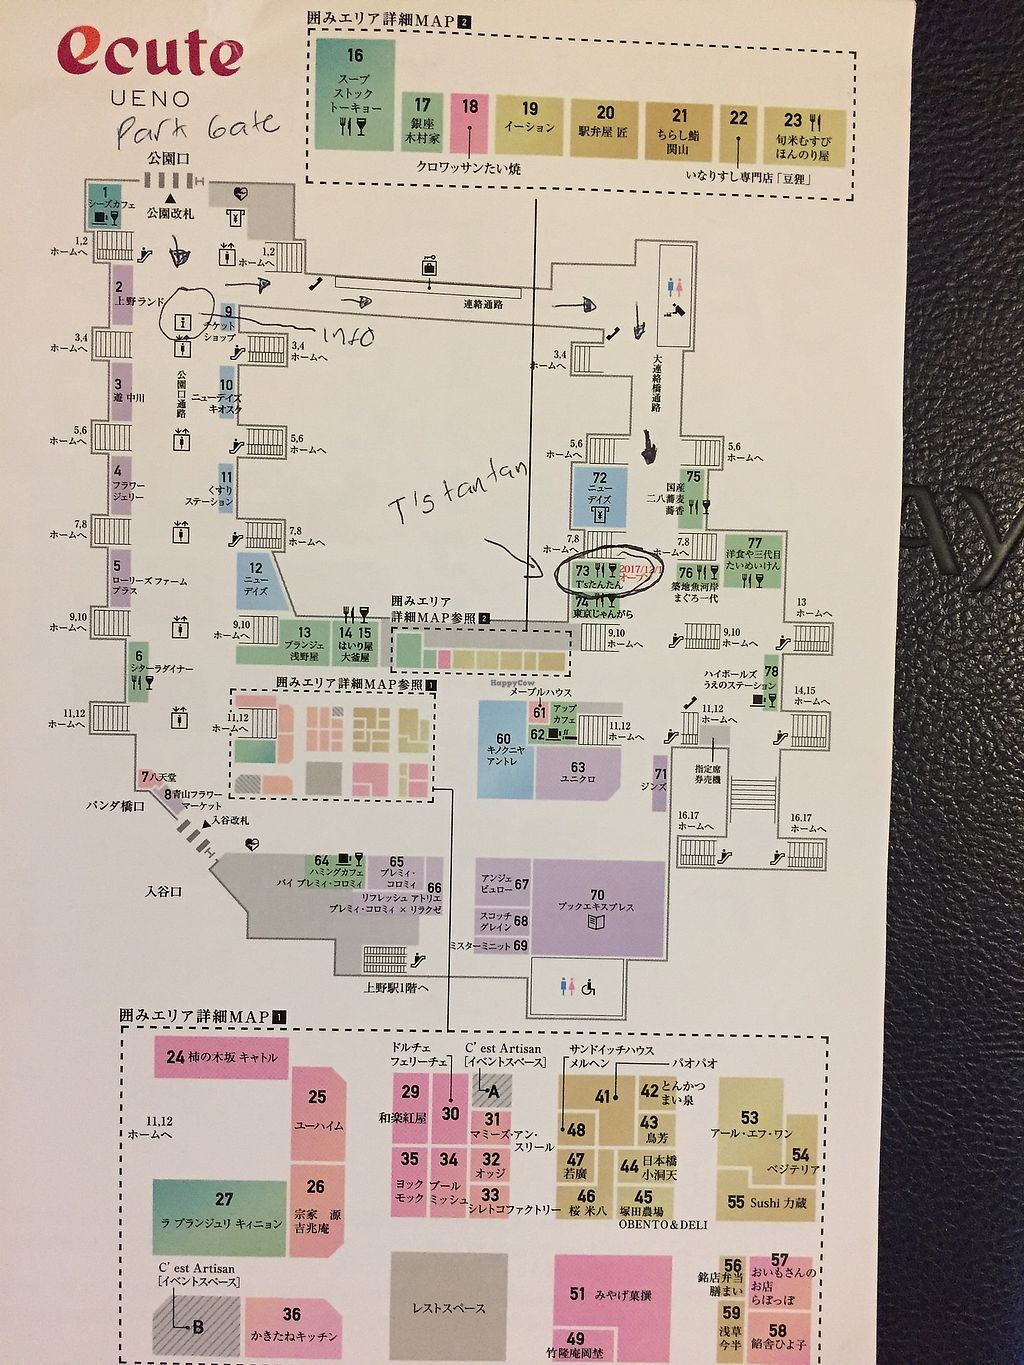 """Photo of T's Tantan - Ueno  by <a href=""""/members/profile/satty"""">satty</a> <br/>Ueno Station map. Entering from Ueno park gates, make a left, then follow the hallway as it turns right and T's Tantan will be towards the end on your right side <br/> February 20, 2018  - <a href='/contact/abuse/image/106436/361858'>Report</a>"""